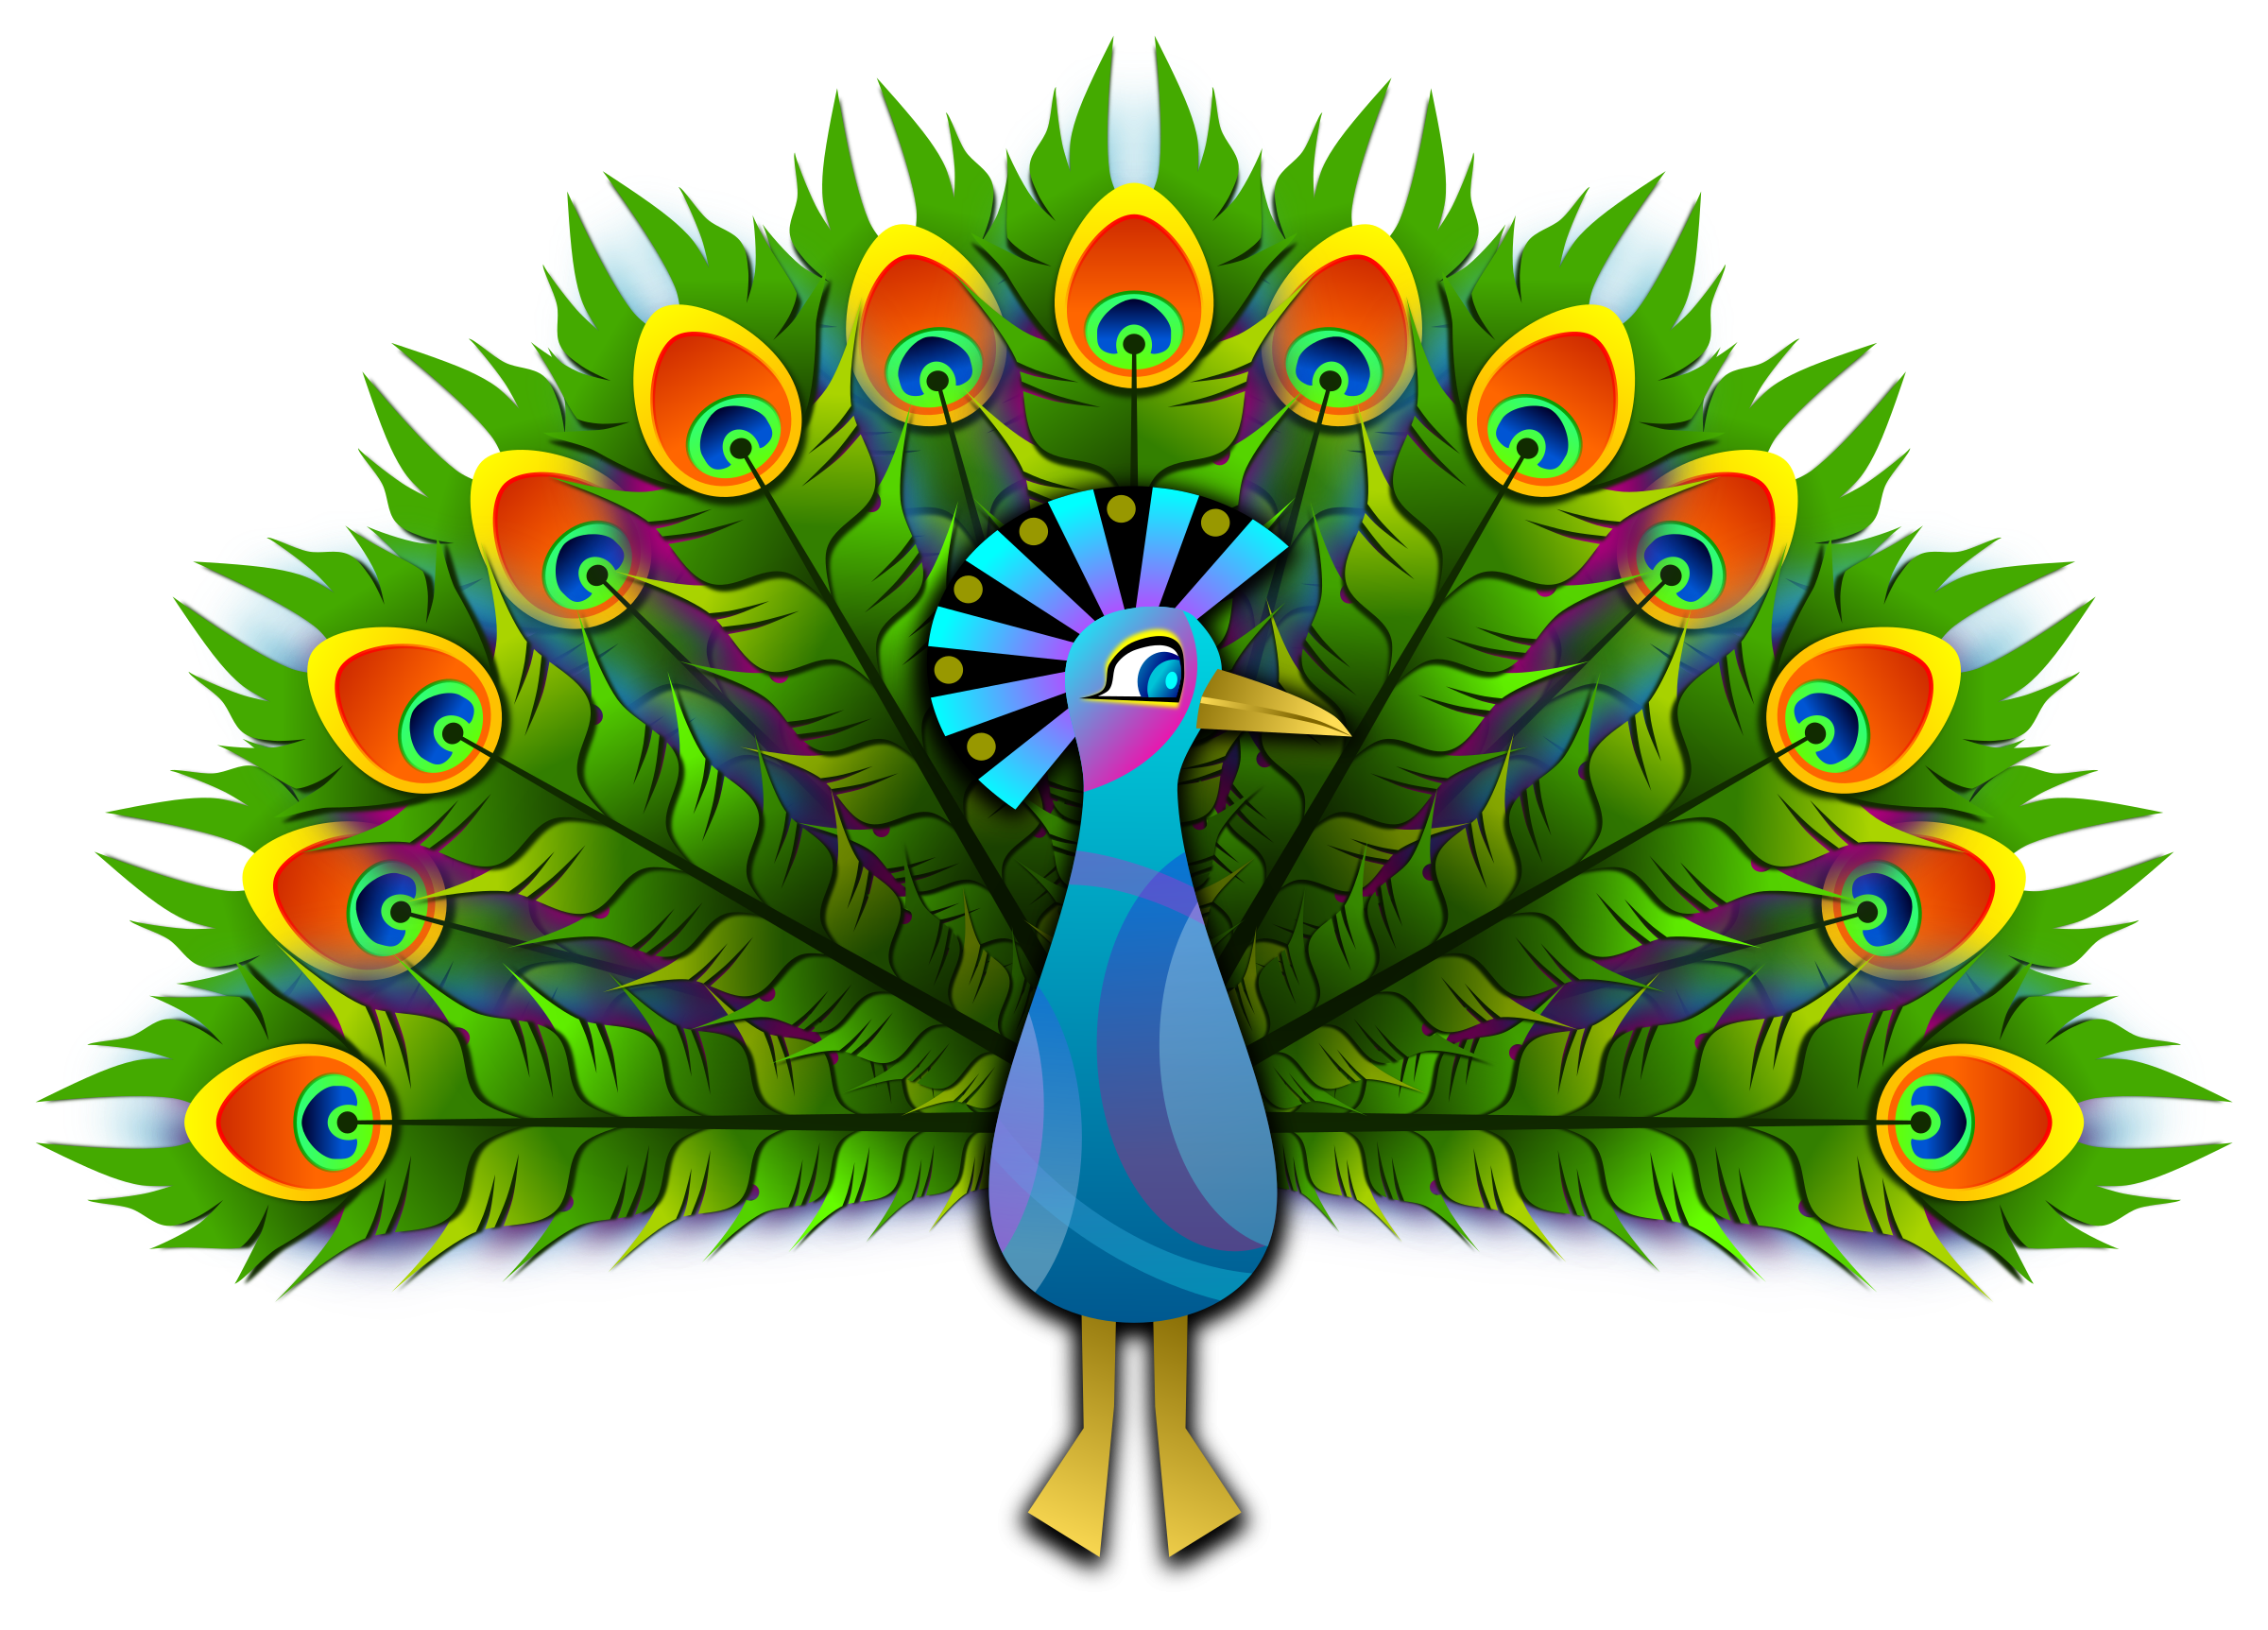 Design clipart peacock. Png images free download